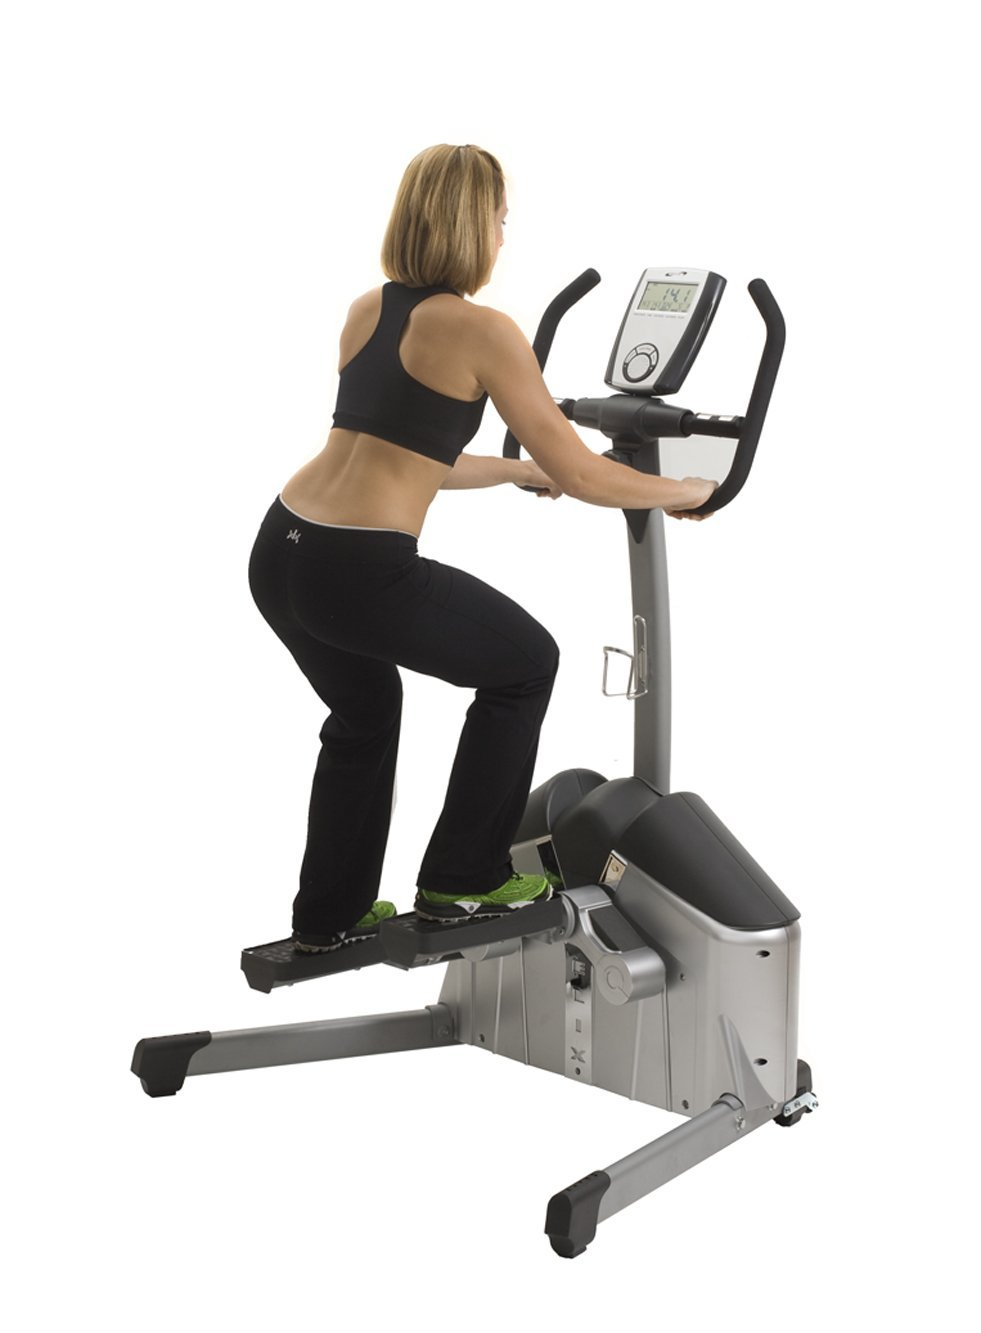 Helix Aerobic Lateral Trainer Review